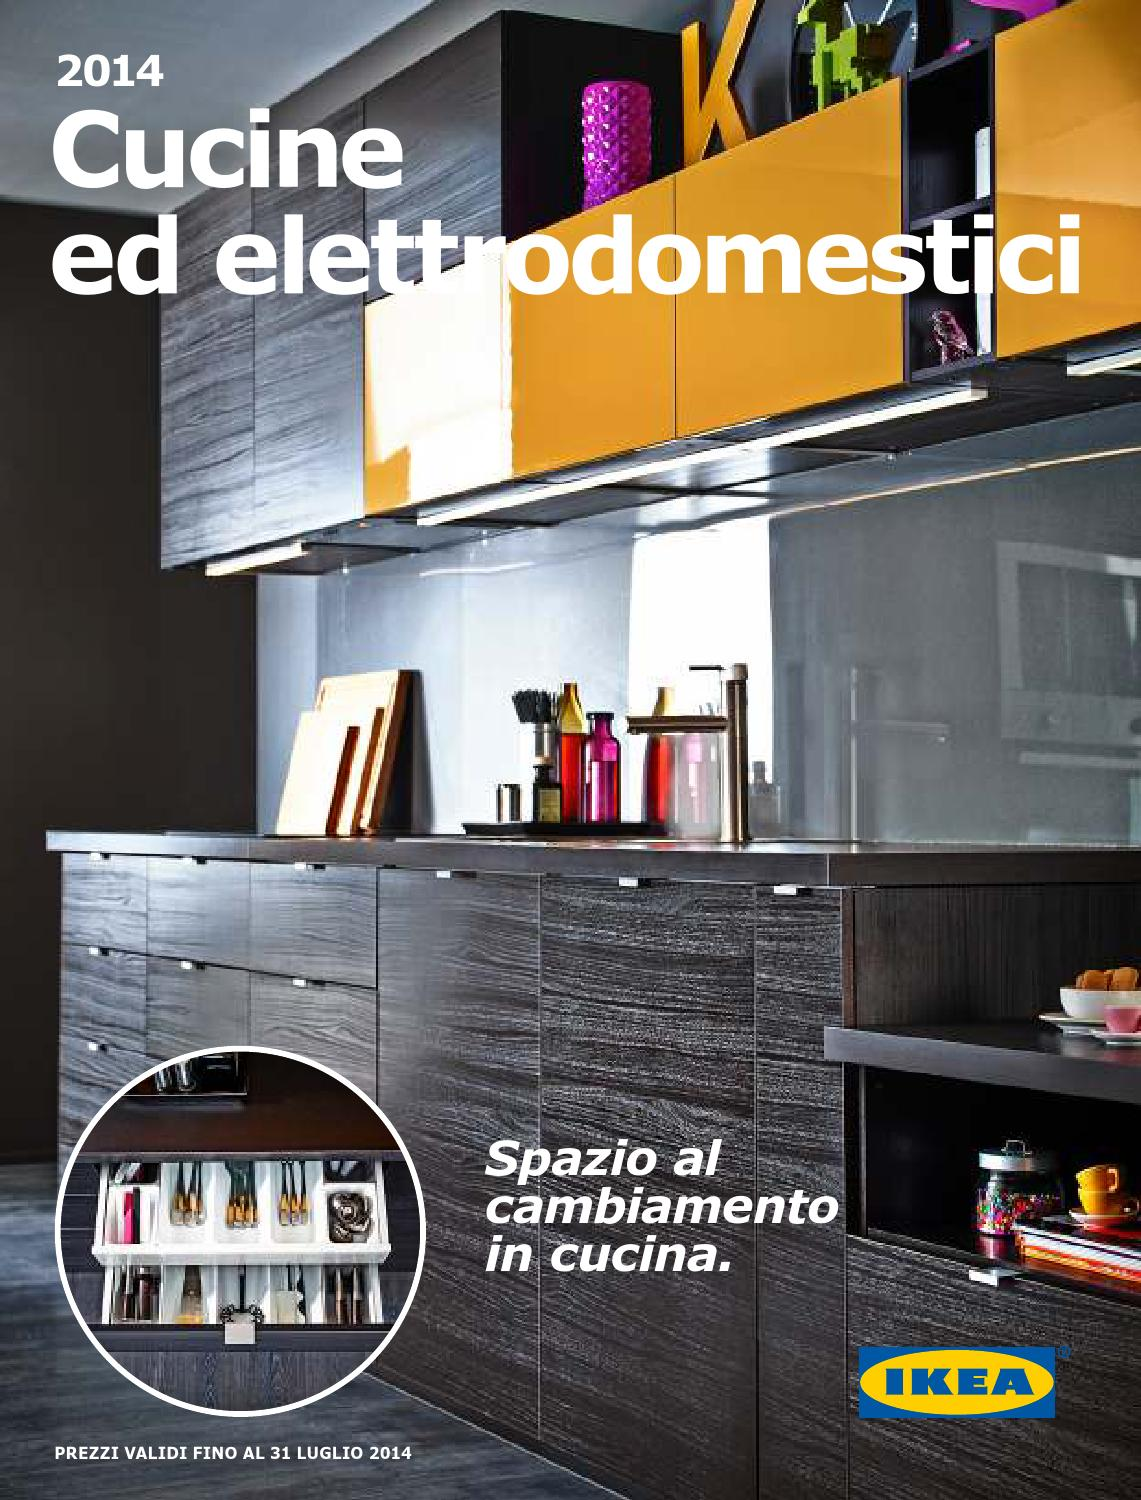 Ikea catalogo cucine 2014 by Mobilpro - issuu